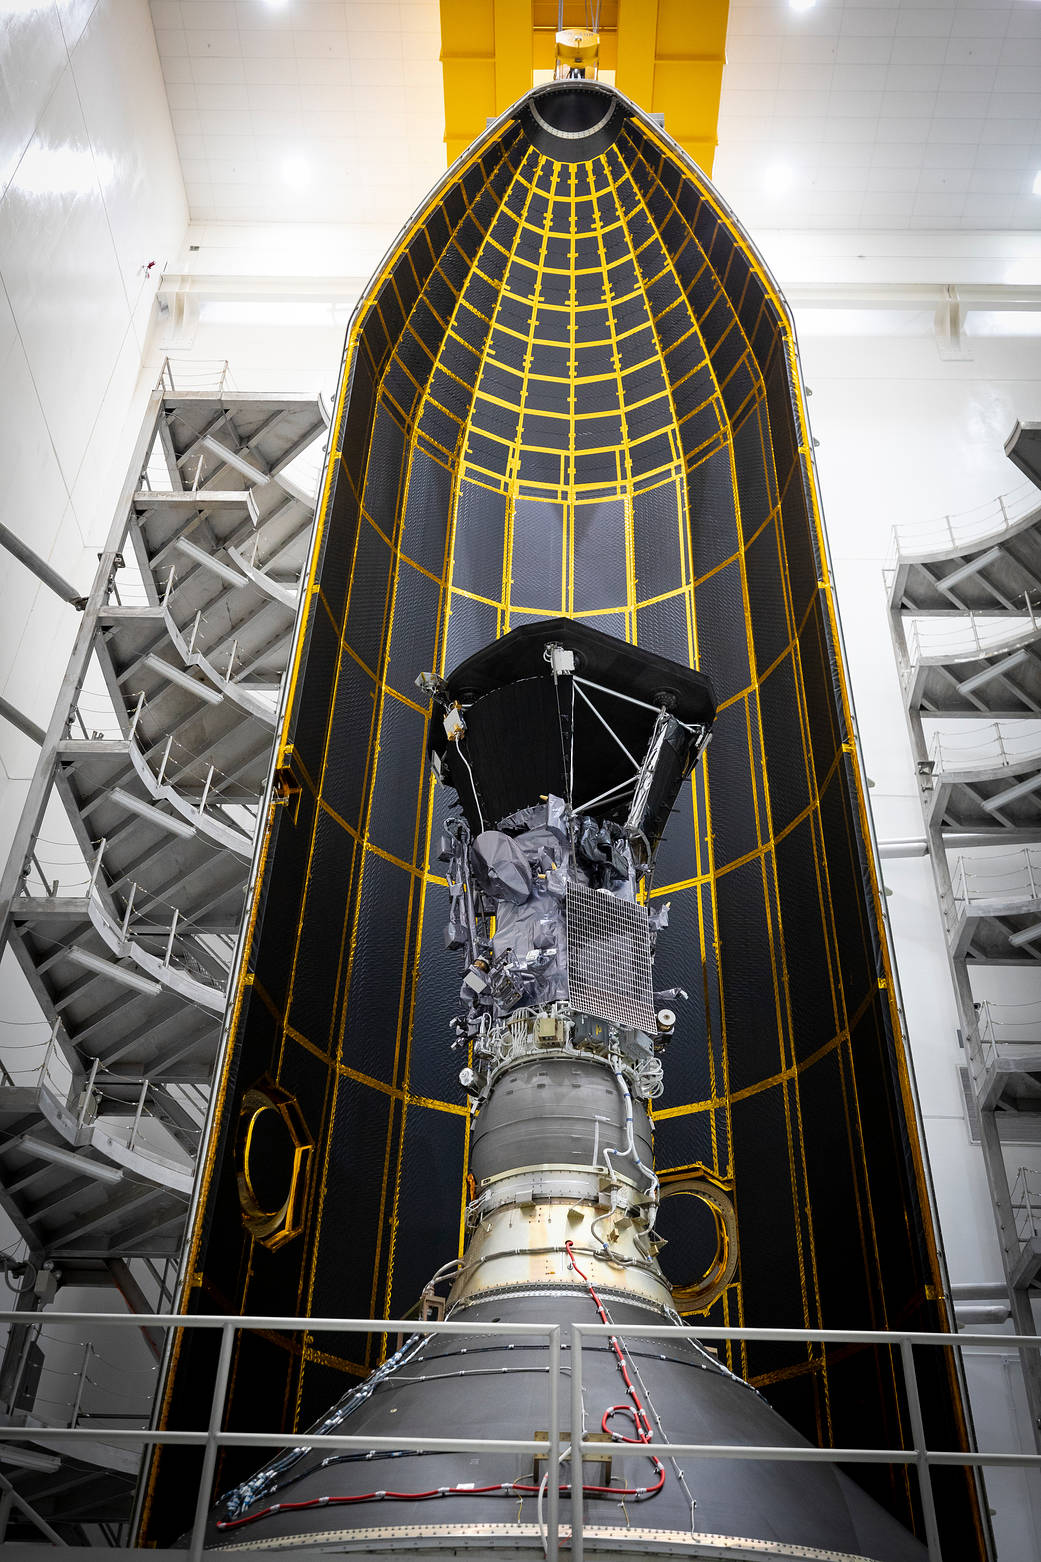 Interior of Parker Solar Probe inside the shield after final clean room testing.  Image credit: NASA